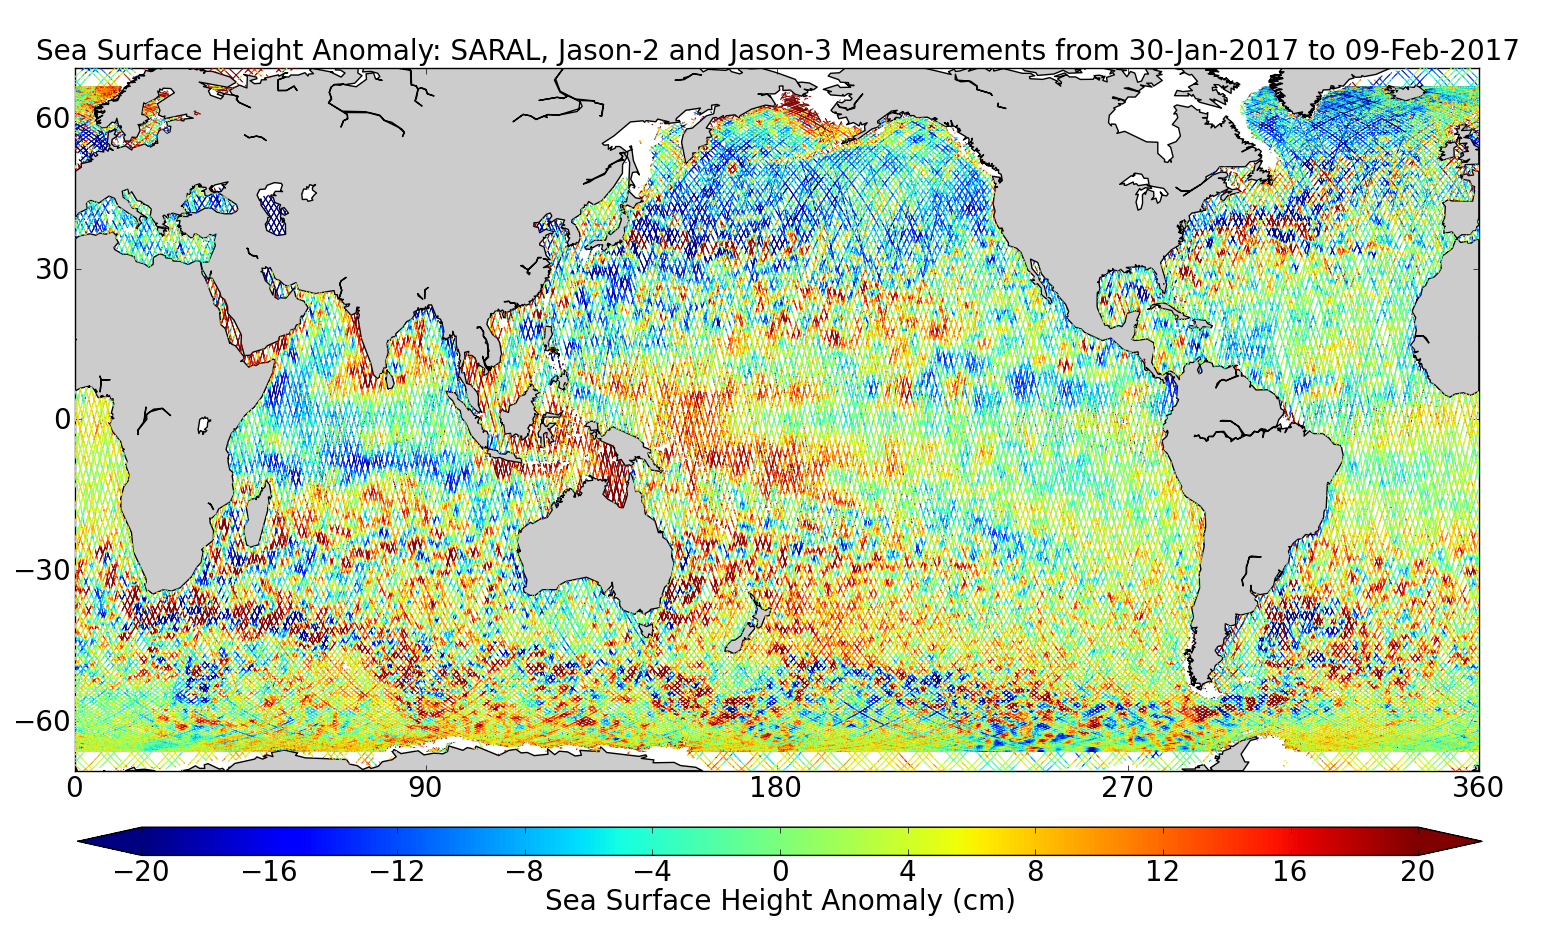 Sea Surface Height Anomaly: SARAL, Jason-2 and Jason-3 Measurements from 30-Jan-2017 to 09-Feb-2017